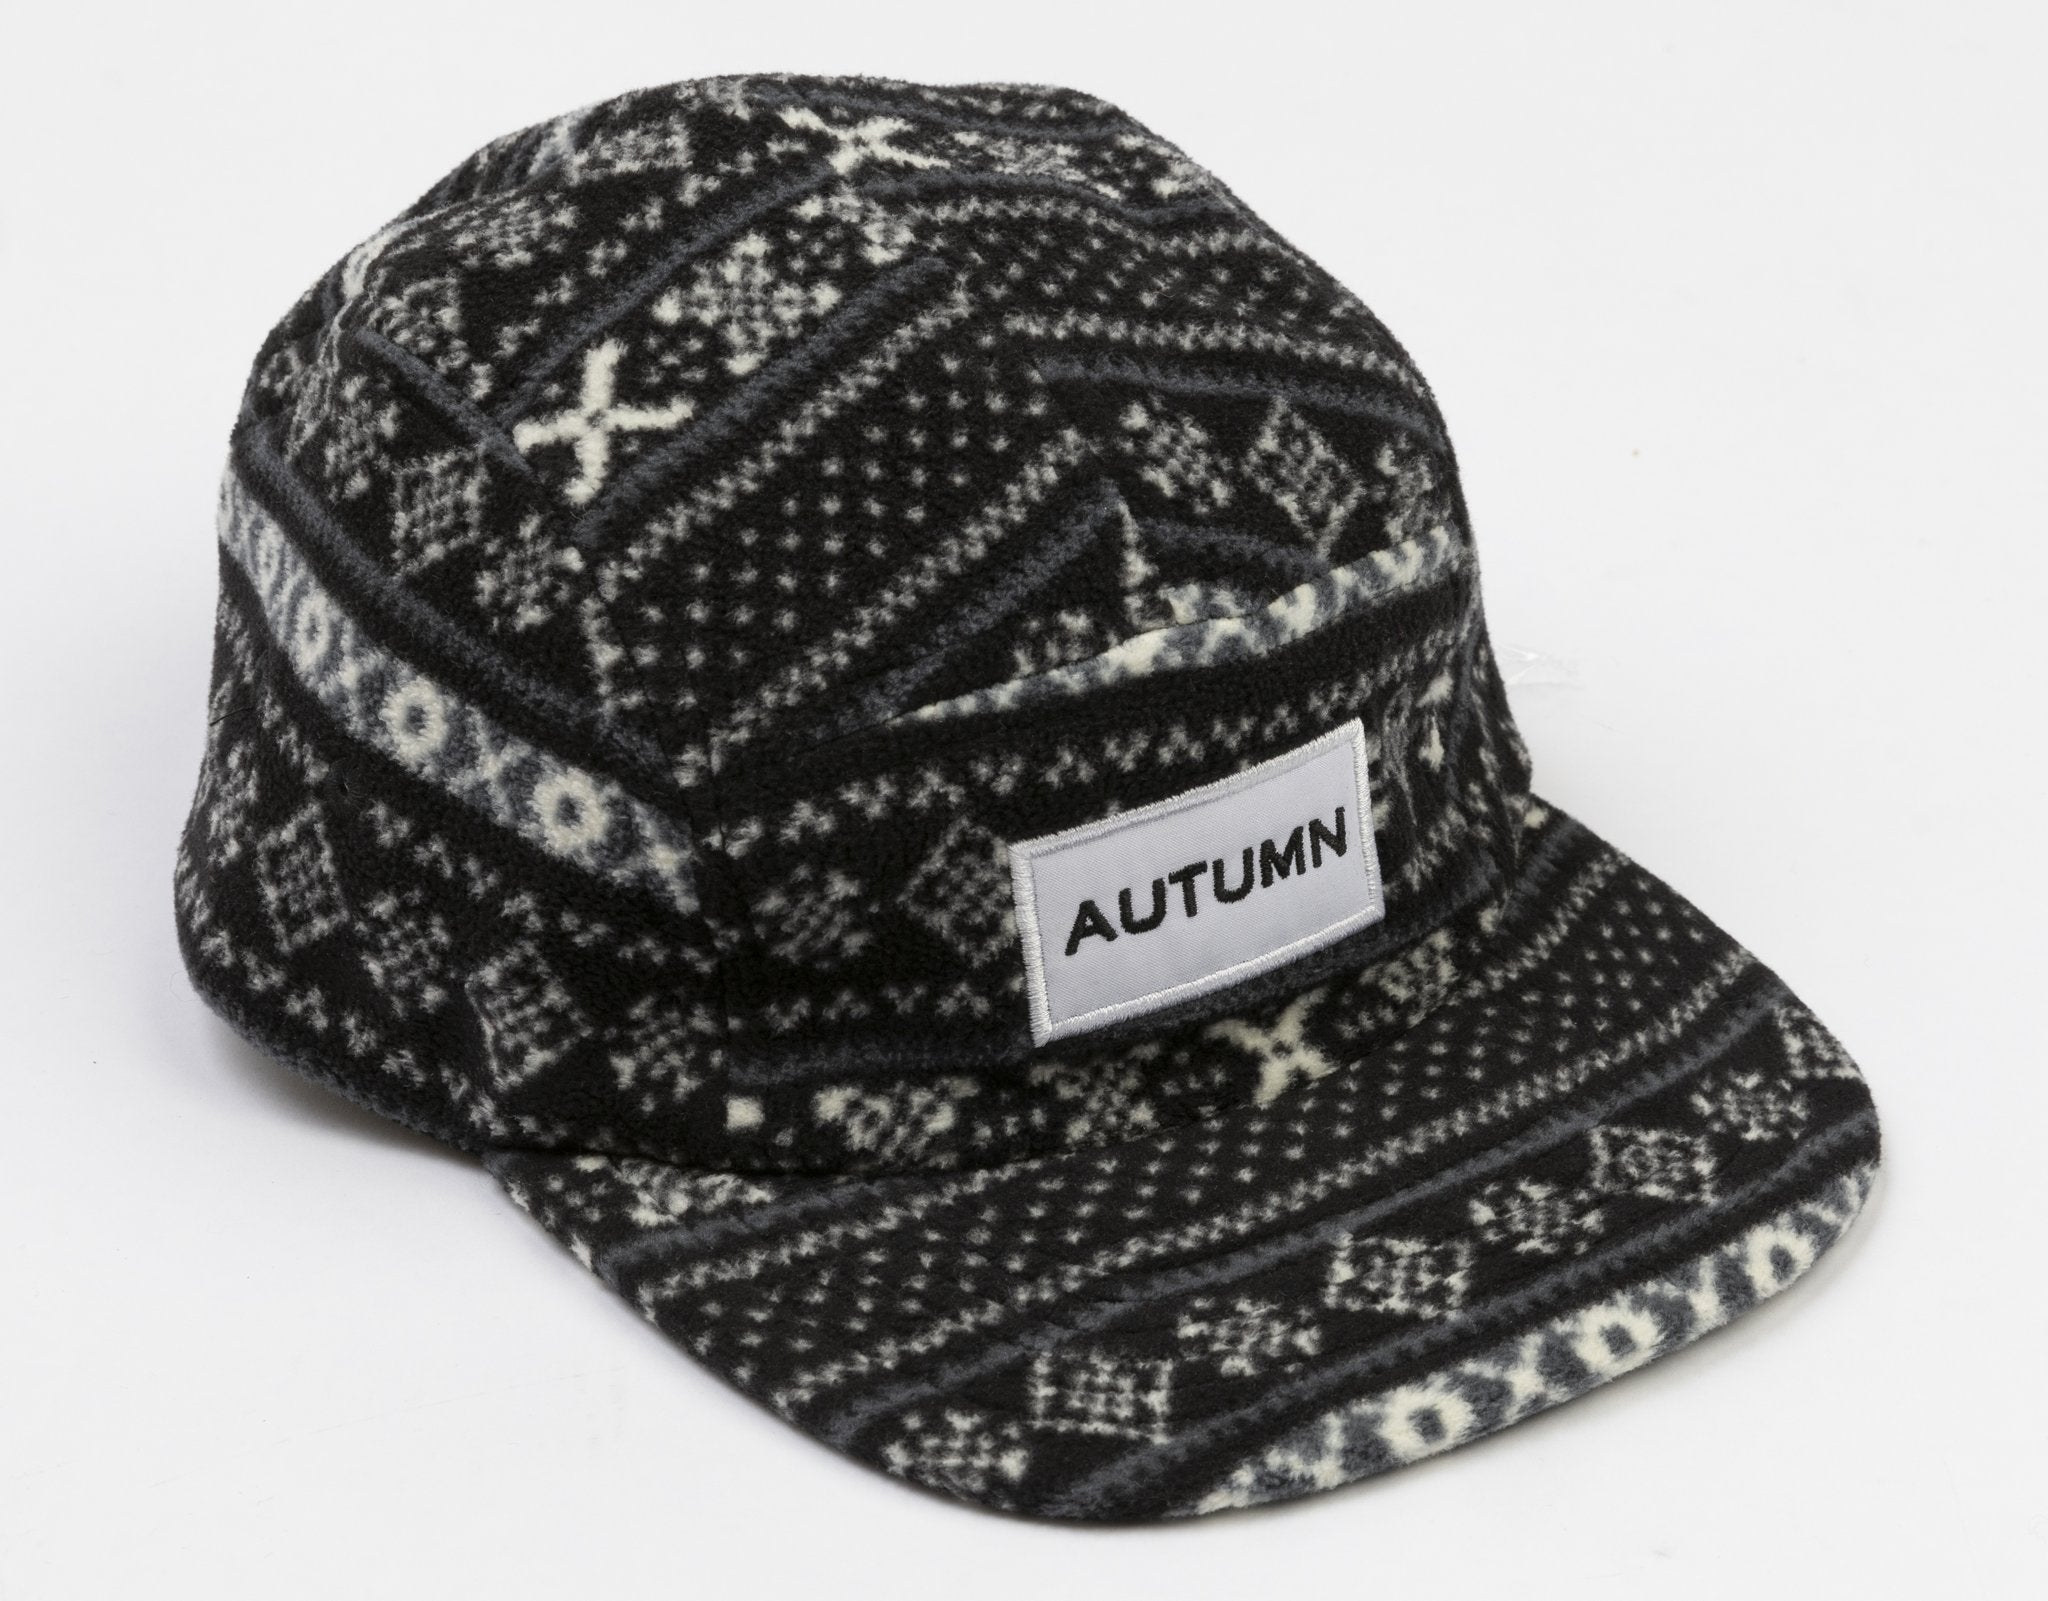 Autumn Headwear Polar Fleece 5 Panel Cap